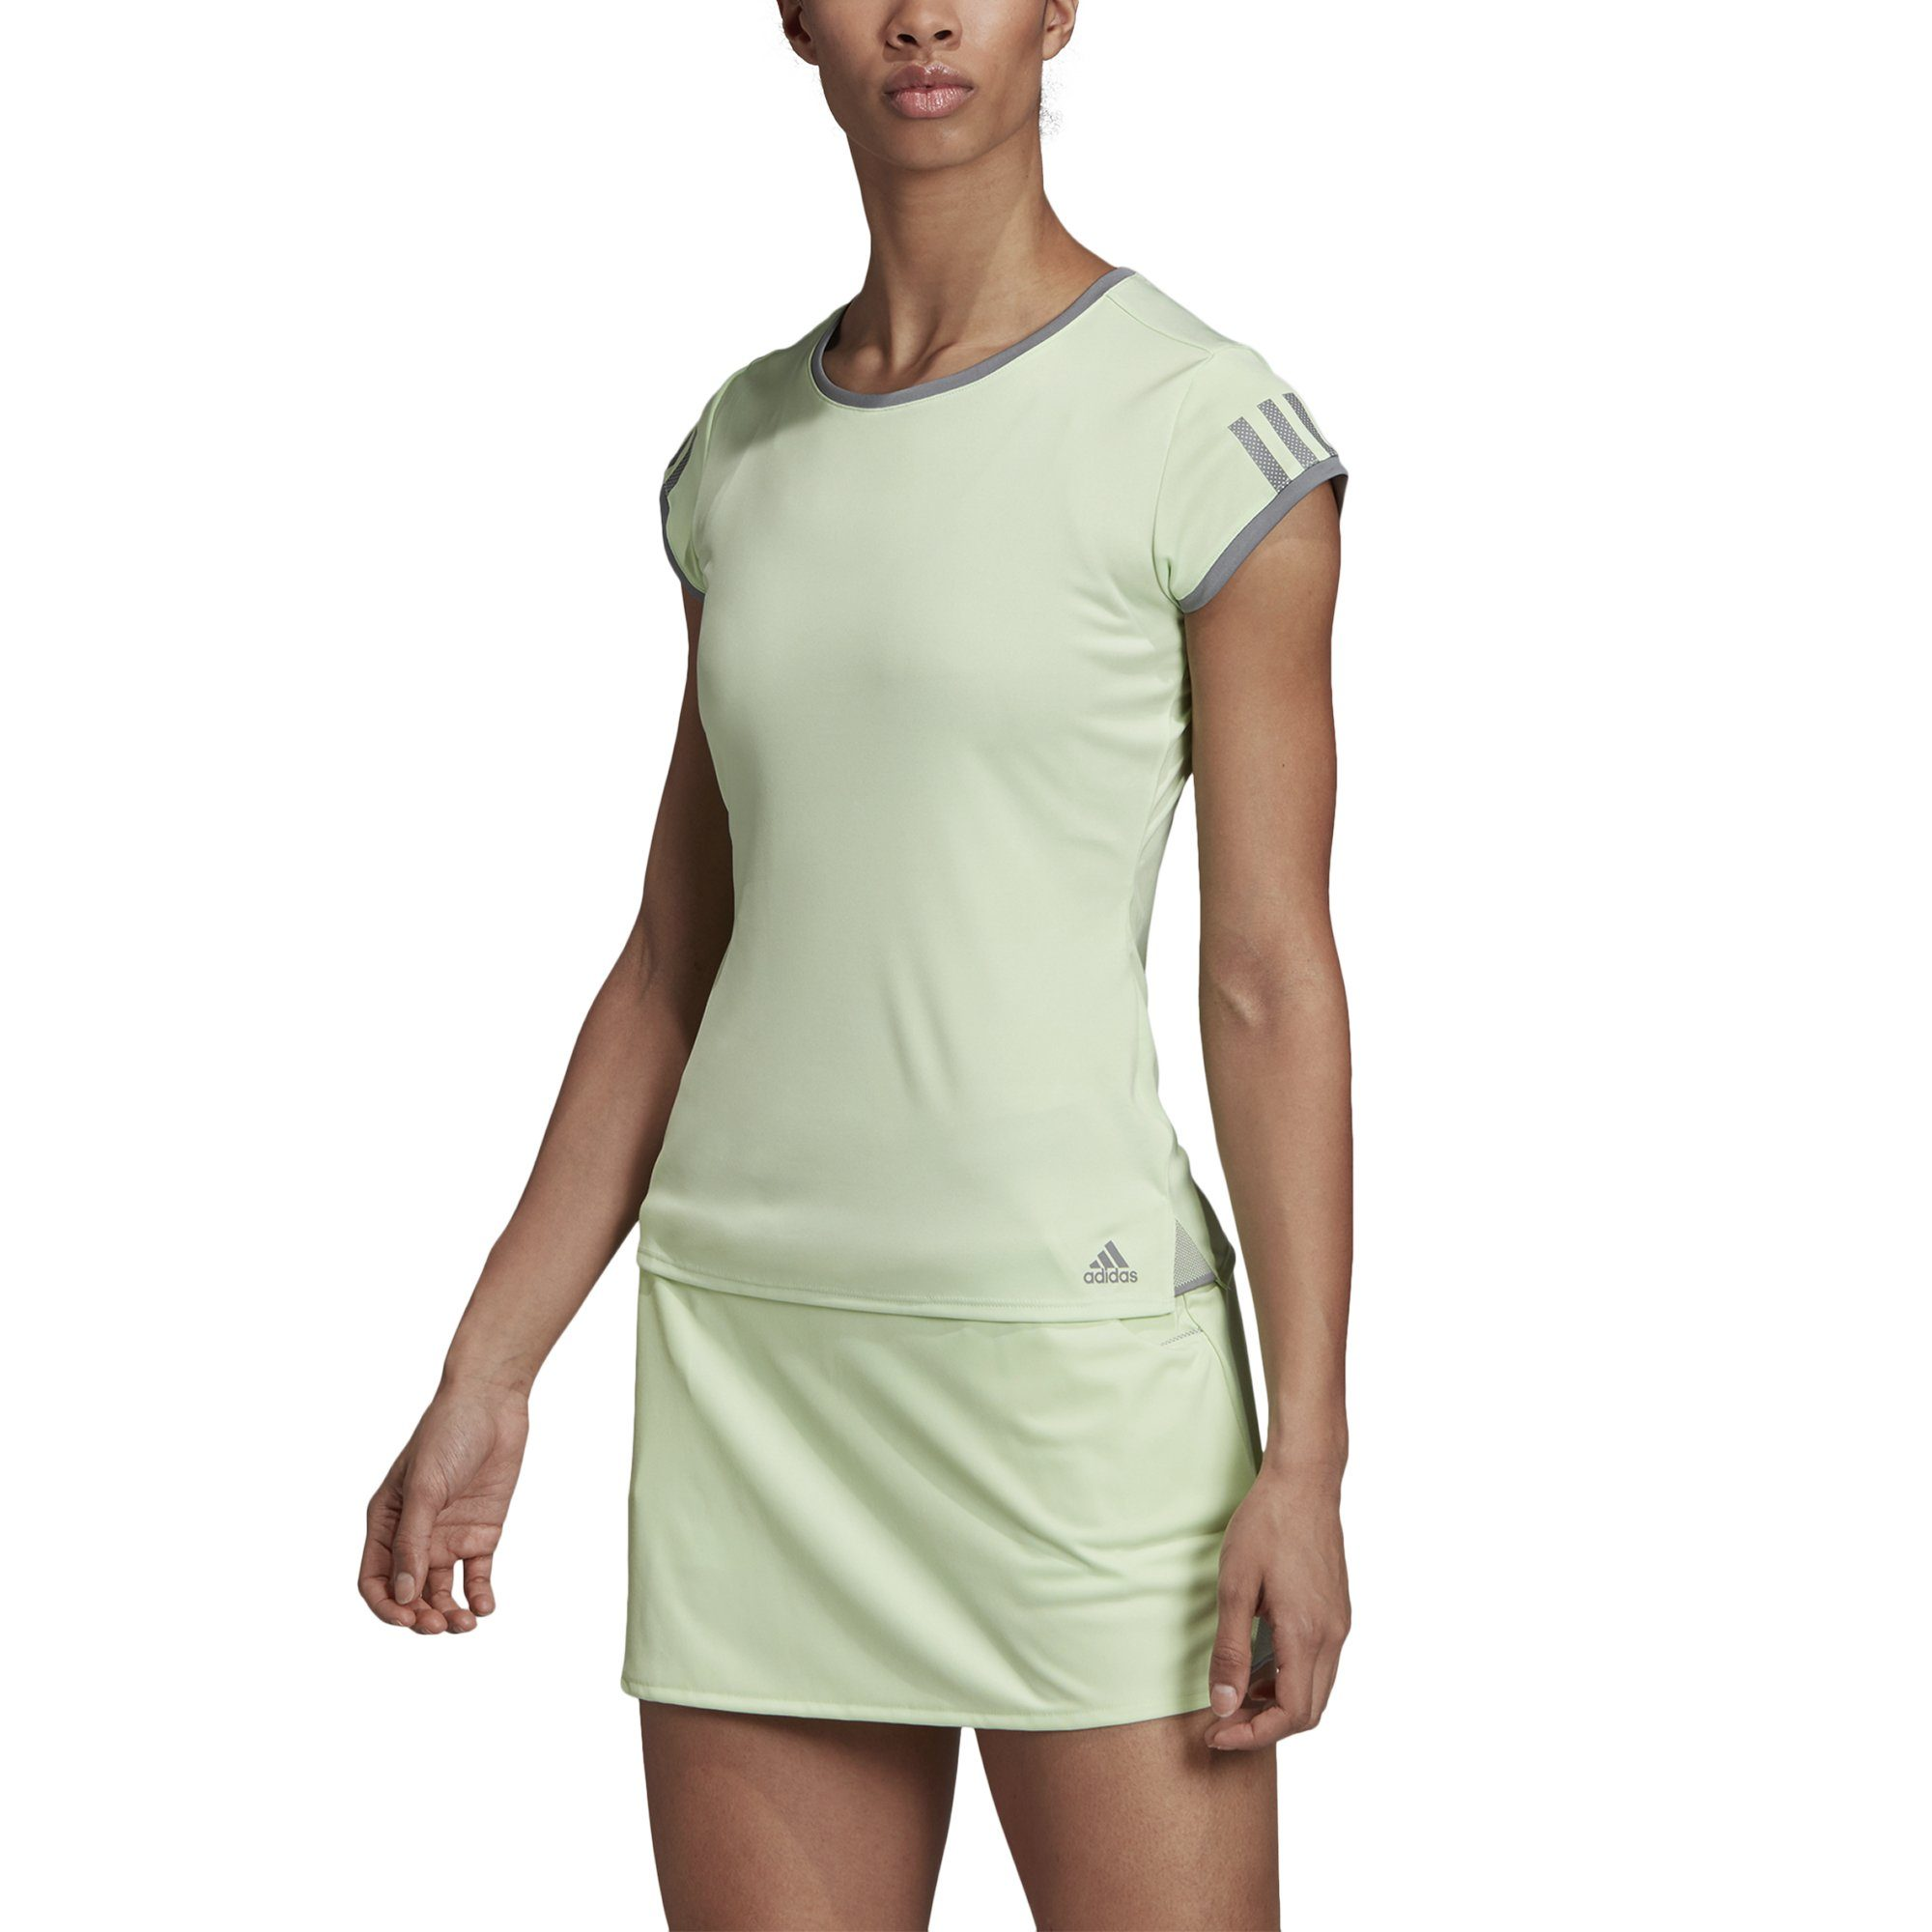 Adidas Womens 3-Stripes Club Tee - glow green SP-APPARELTEES-WOMENS Adidas